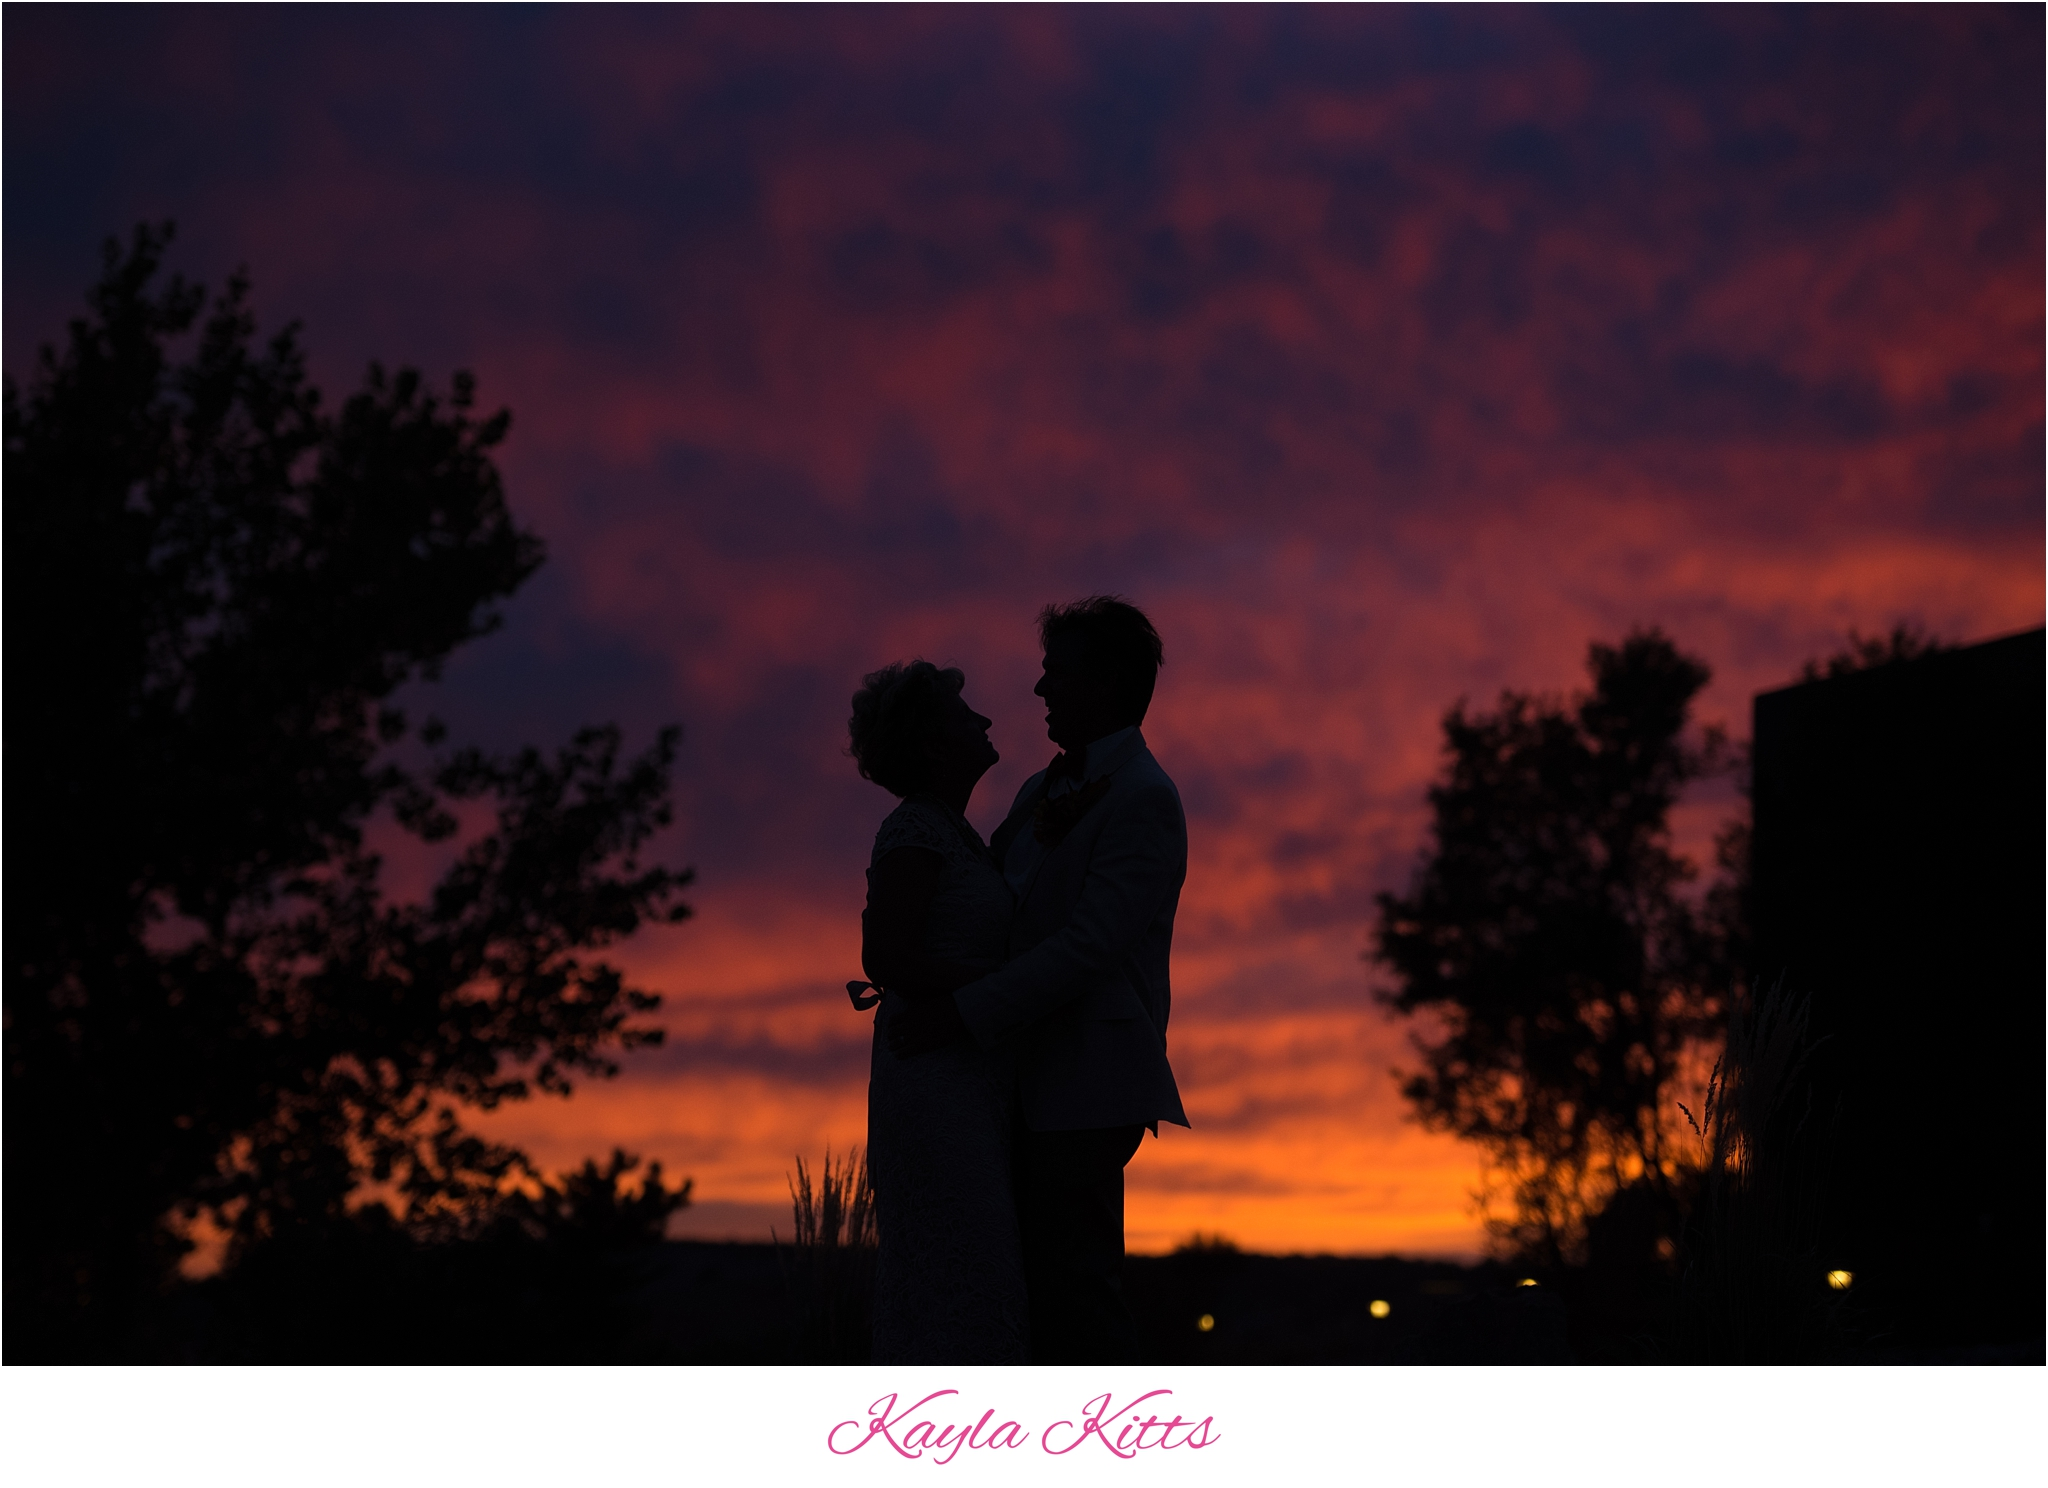 kayla kitts photography - albuquerque wedding photographer - albuquerque wedding photography - albuquerque venue - hyatt tamaya - hyatt tamaya wedding - new mexico wedding photographer_0058.jpg